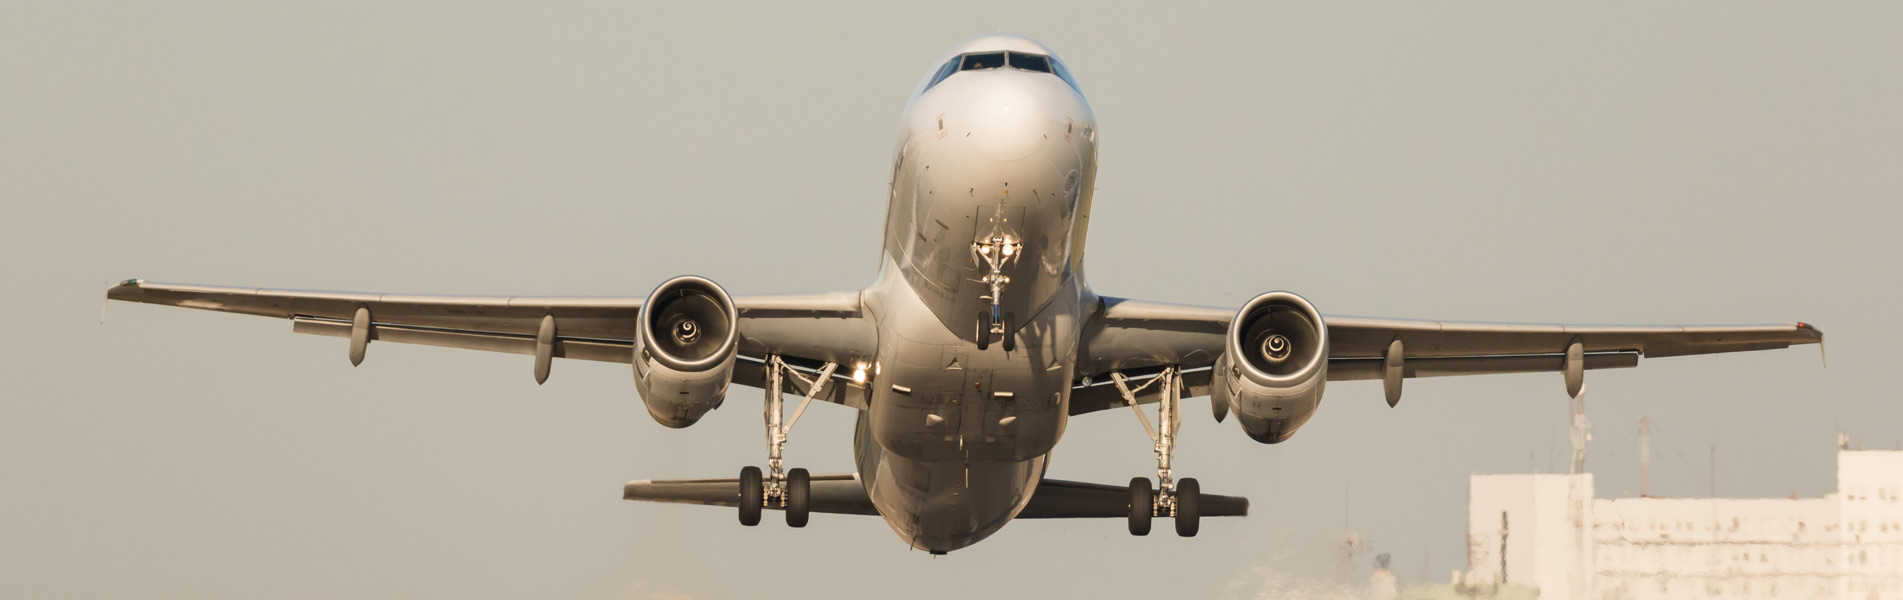 Aircraft Charter & Leasing Services